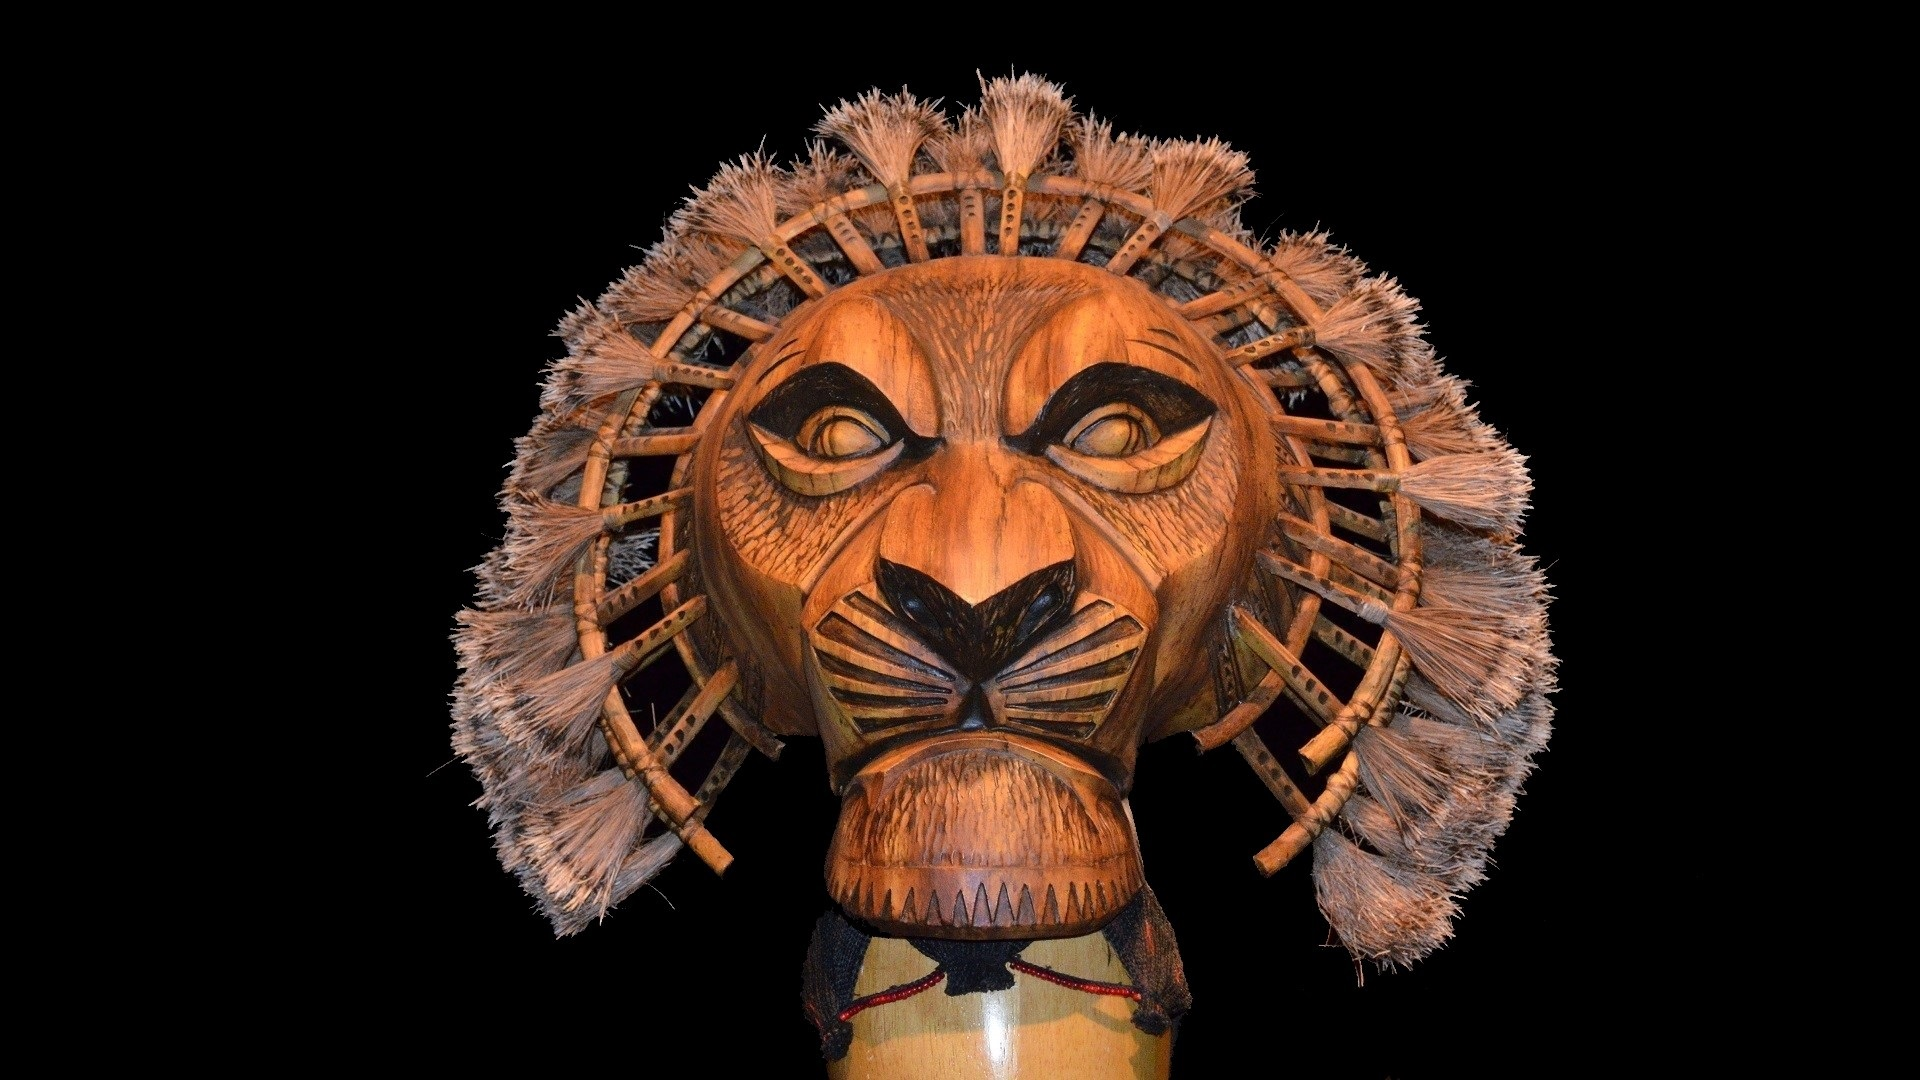 Lion Live Wallpaper Iphone X Mufasa Mask From The Lion King Musical Full Hd Wallpaper